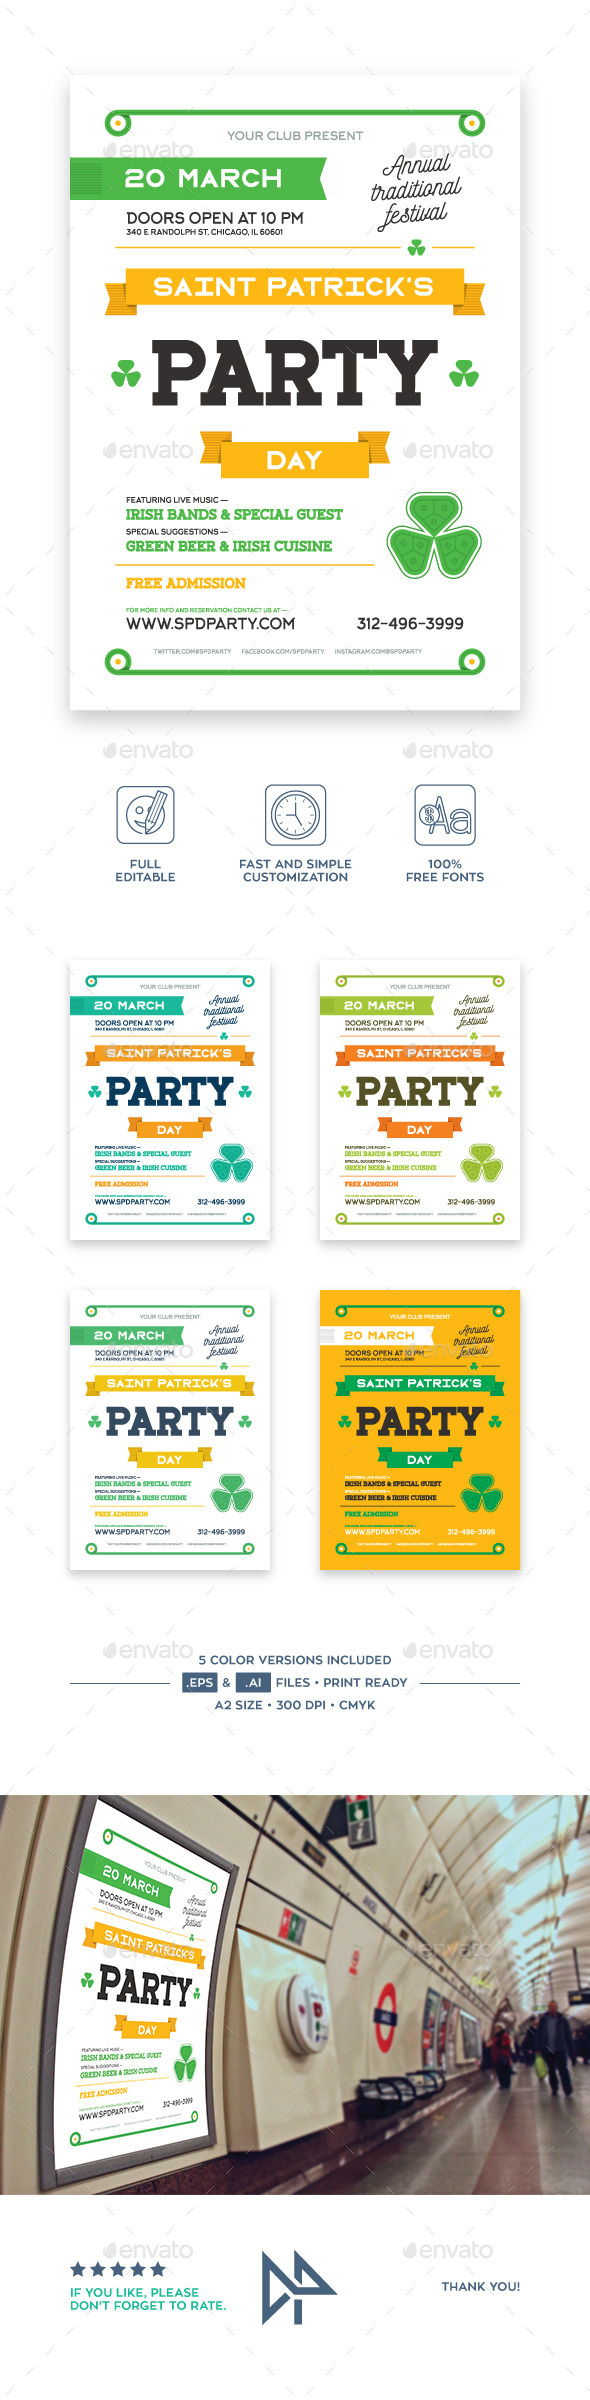 St Patrick's Party Poster vol.2